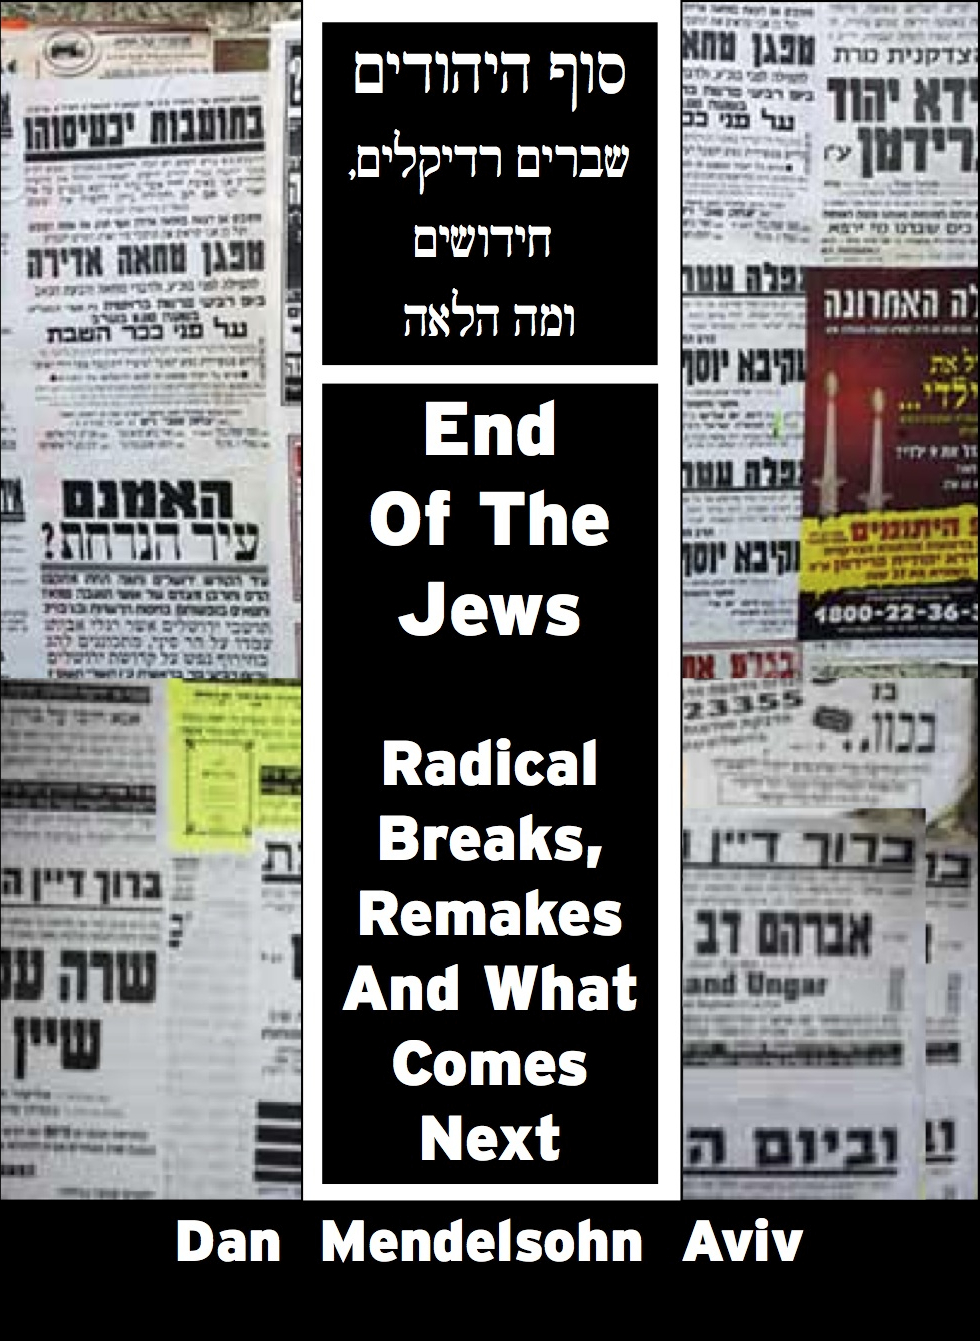 End of the Jews: Radical Breaks, Remakes, and What Comes Next by Dan Mendelsohn Aviv